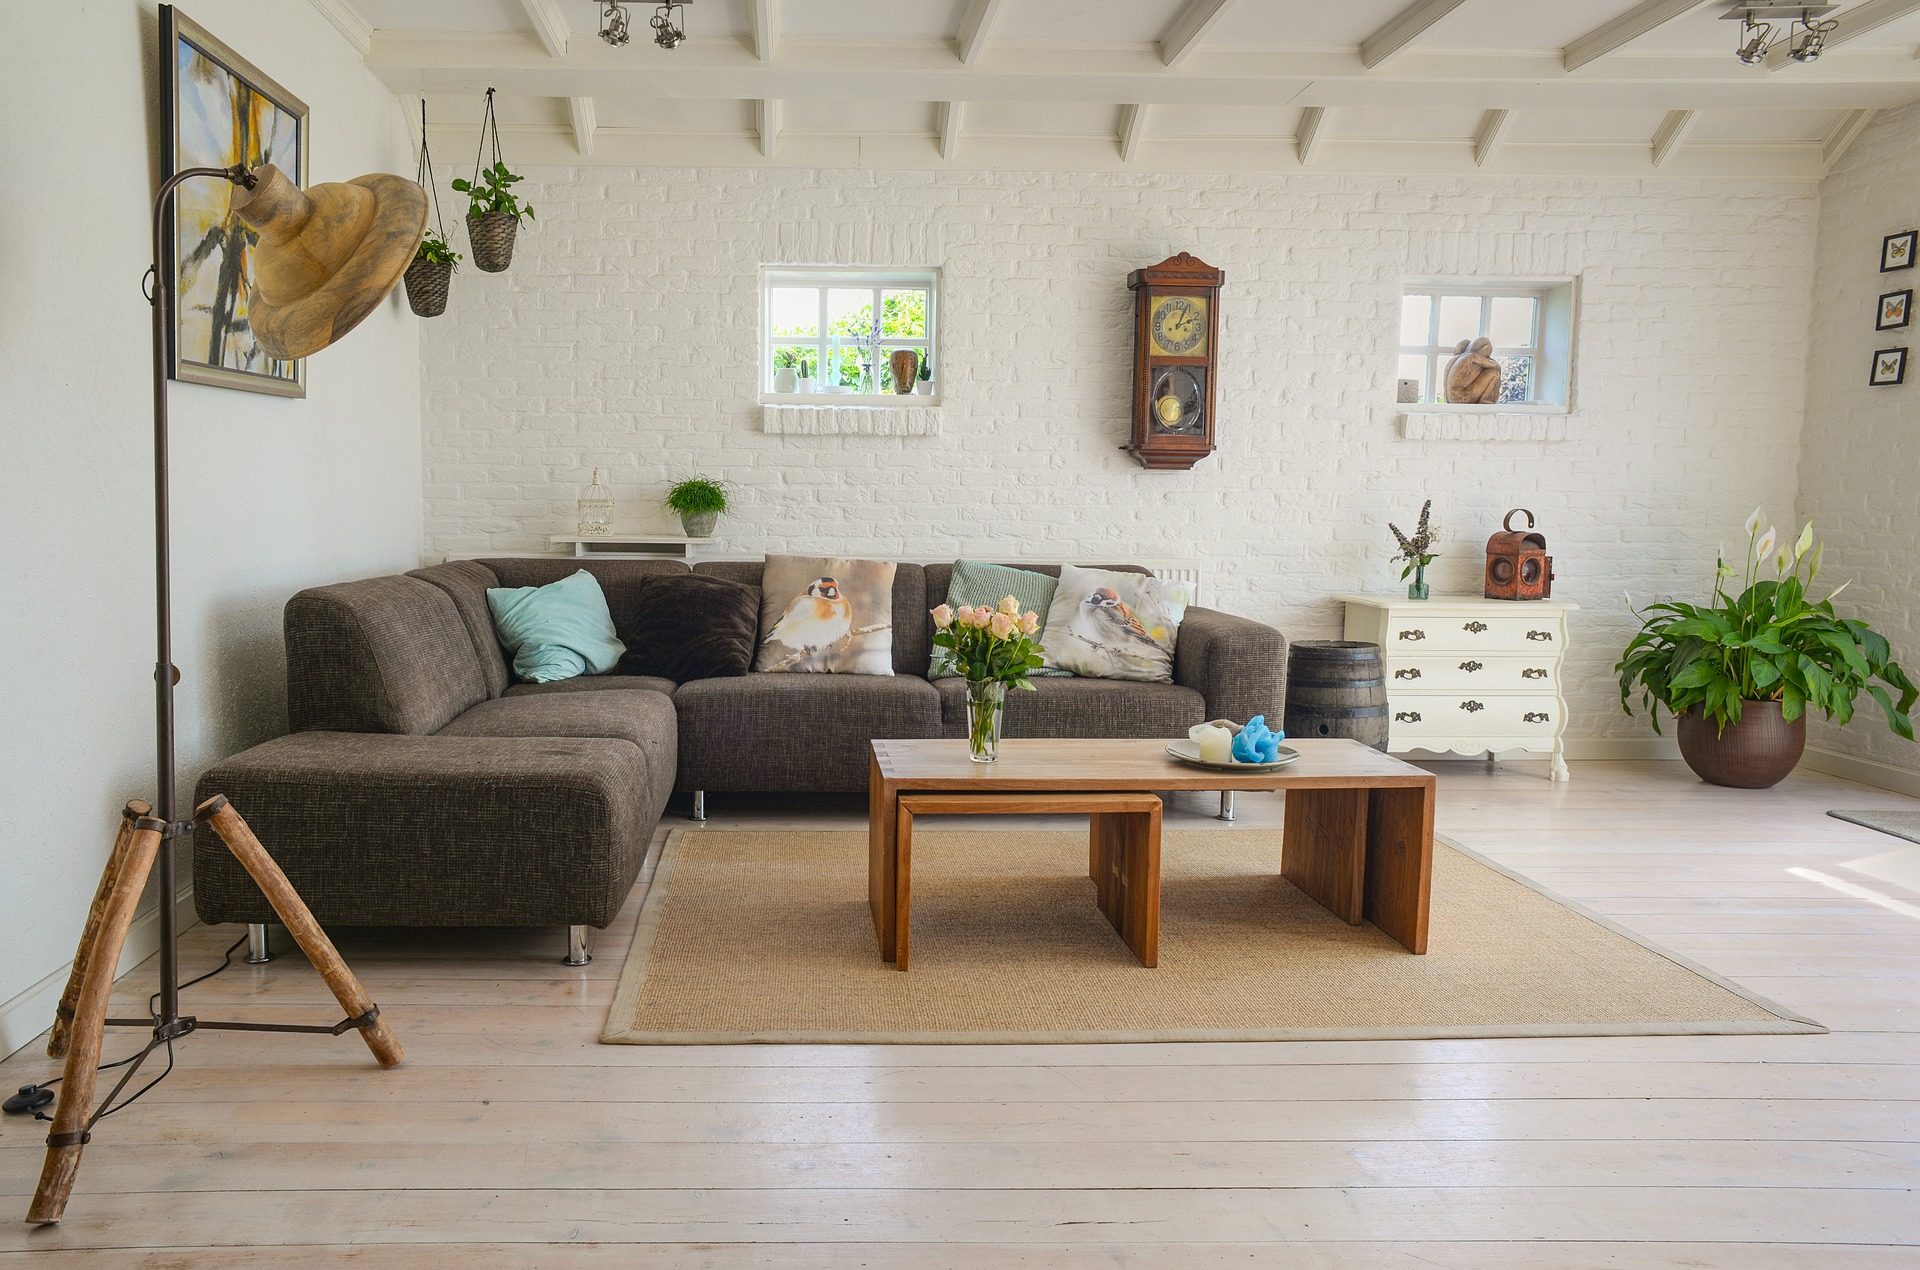 Former Match Executive Battles IKEA with Online Furniture Business